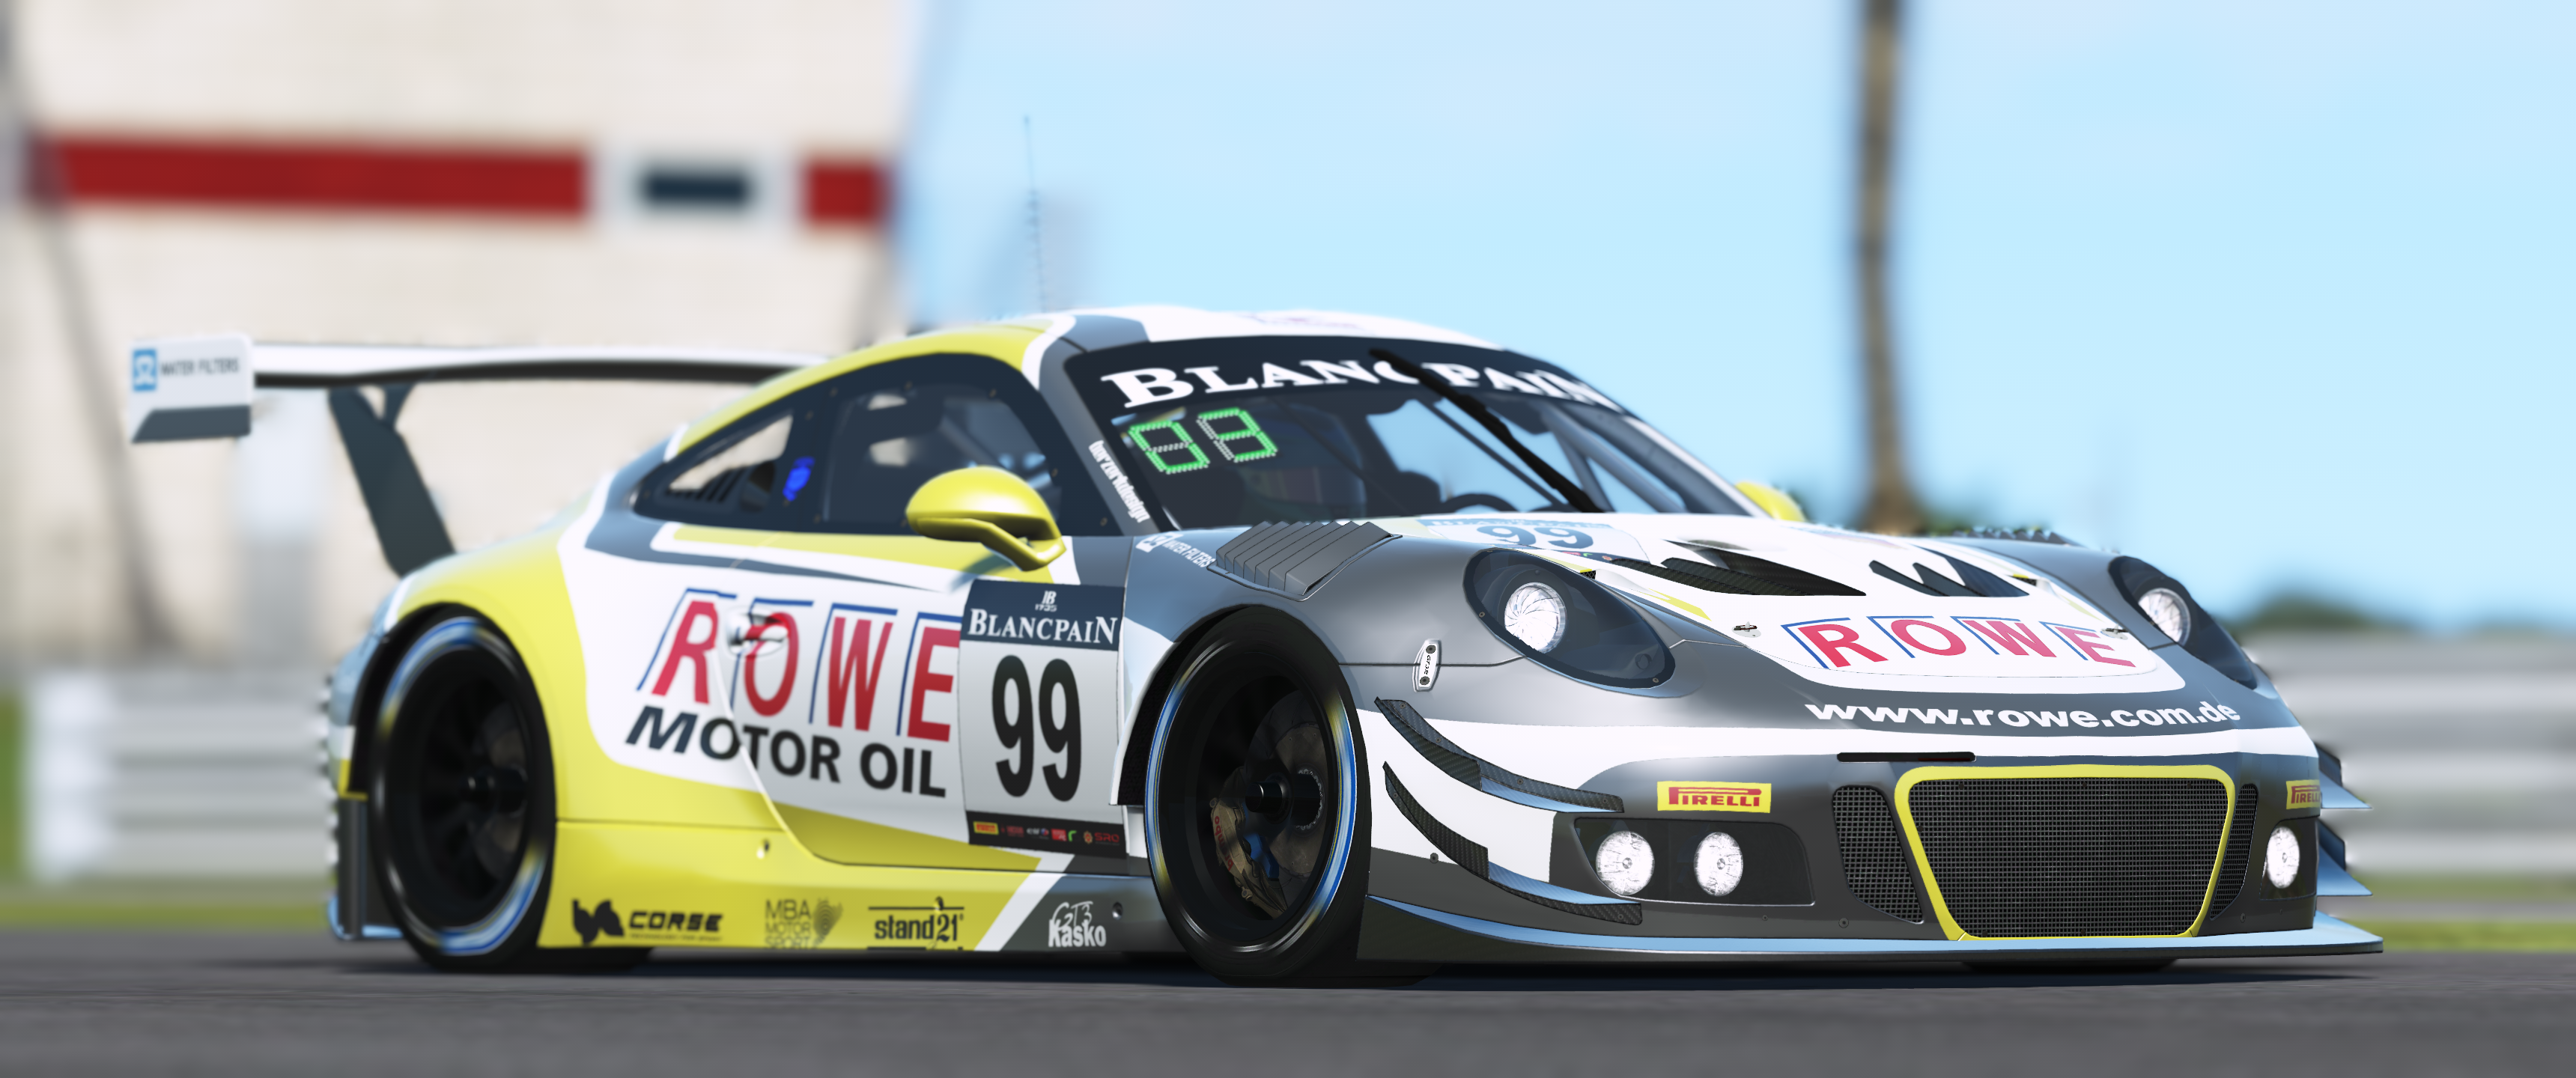 rFactor2 2019-02-27 17-17-12-76.png